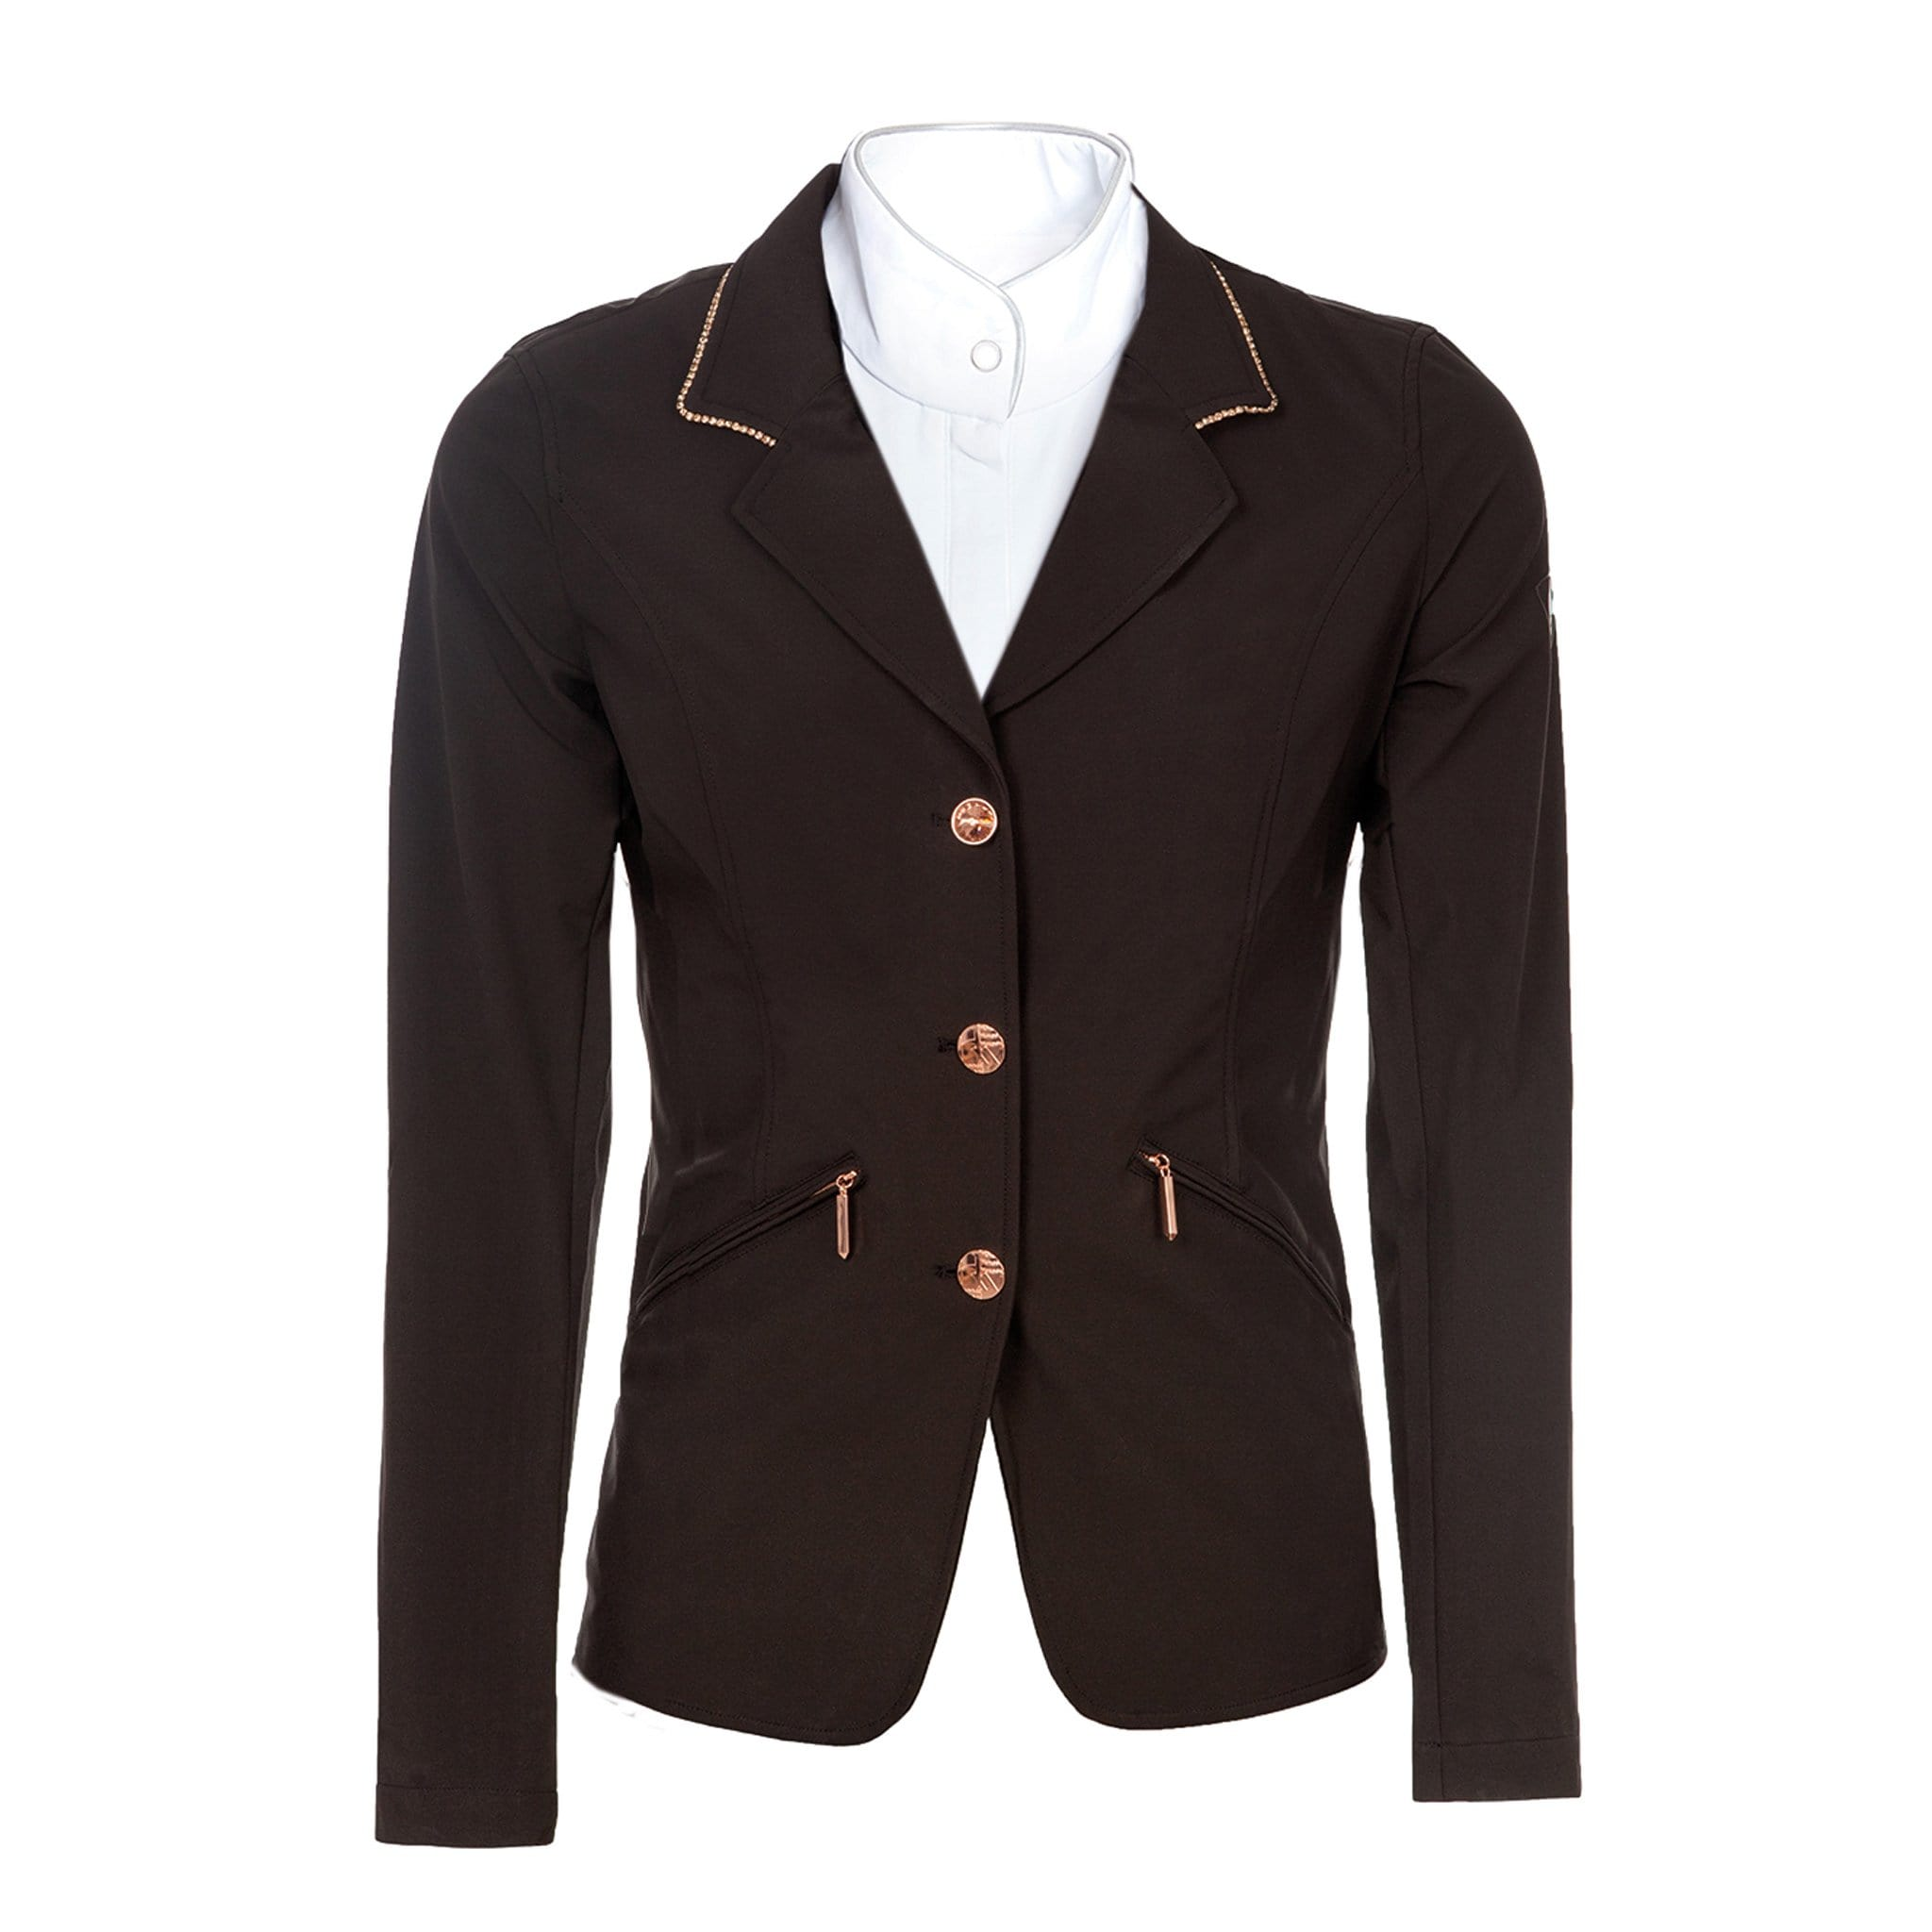 Horseware Embellished Competition Jacket CCBODZ Black With Rose Gold Trim Front Studio